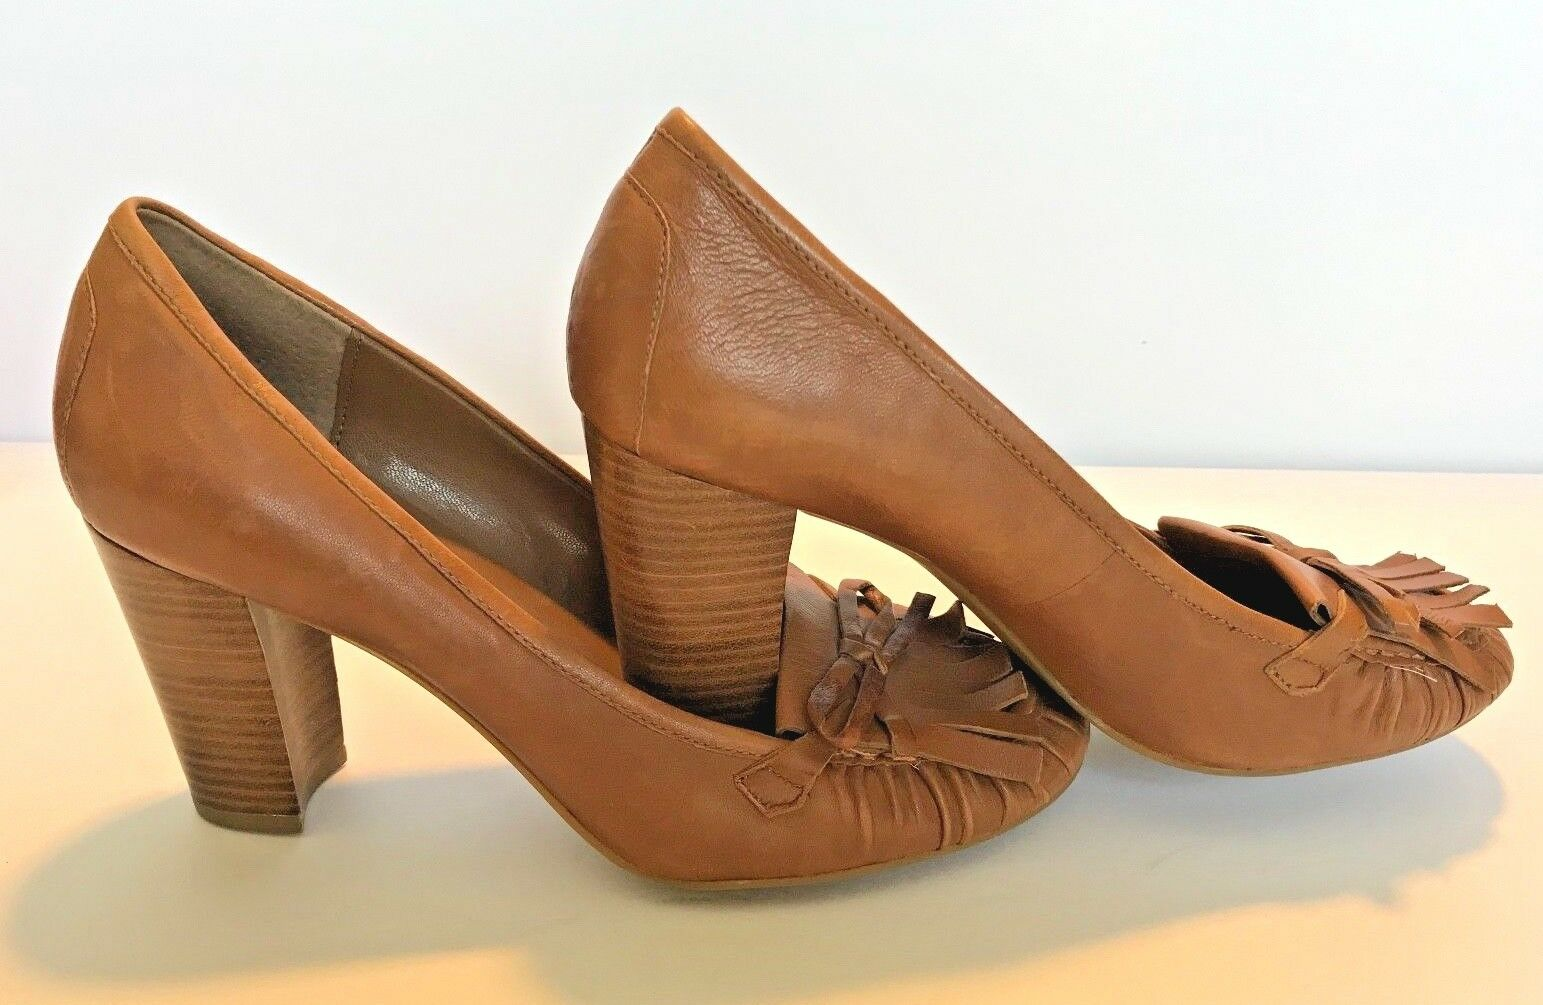 Franco Sarto Brown Leather Heels Look Women's Size 7.5 Loafer Look Heels 092977